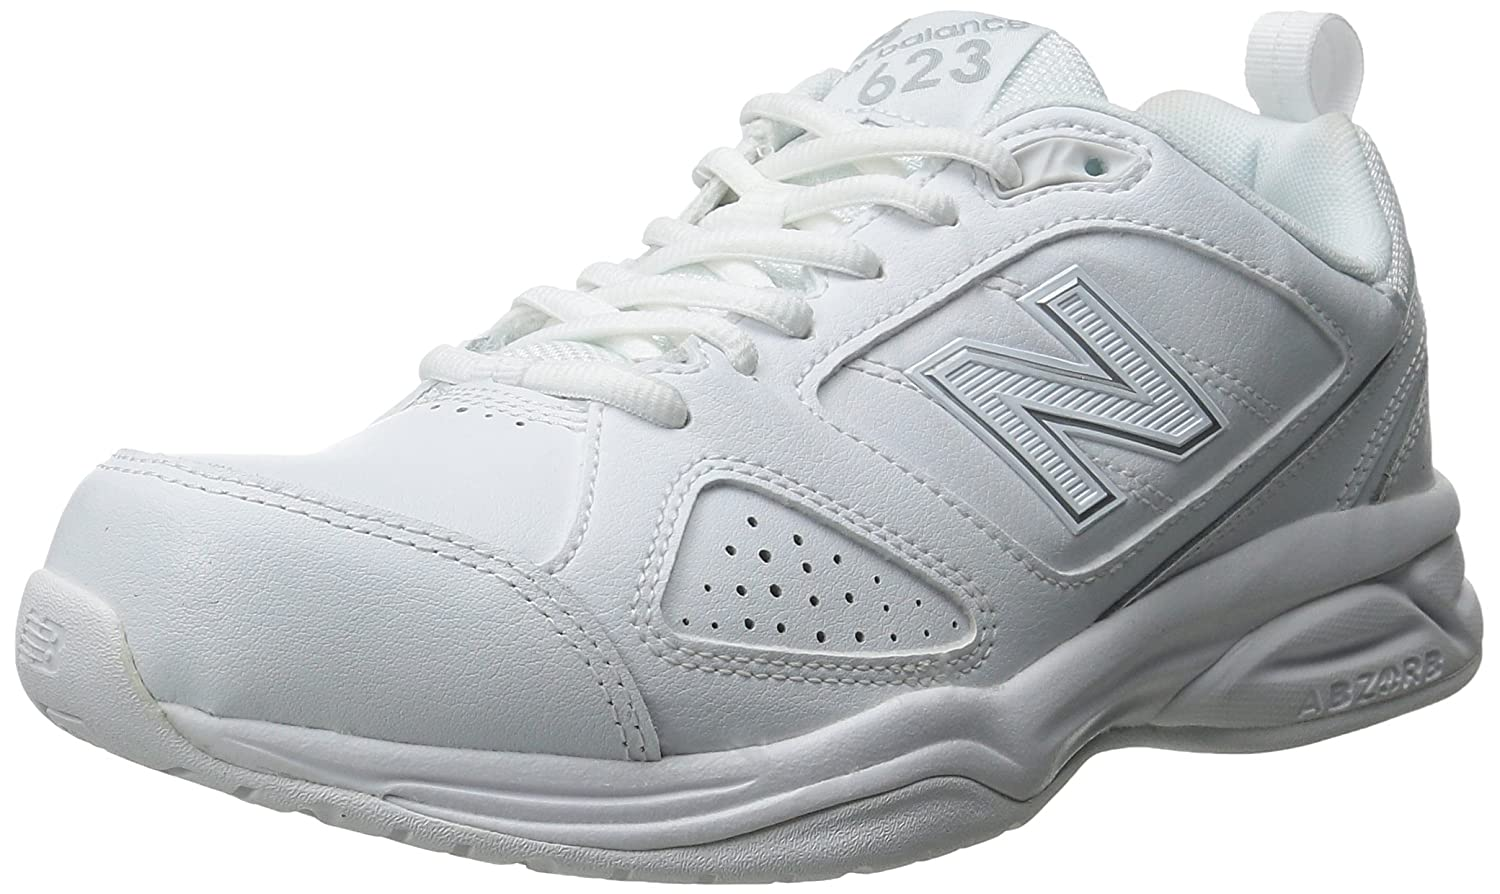 New Comfort Balance Women's WX623v3 Casual Comfort New Training Shoe B00V3NE2PM 8 B(M) US|White/Silver c946c1